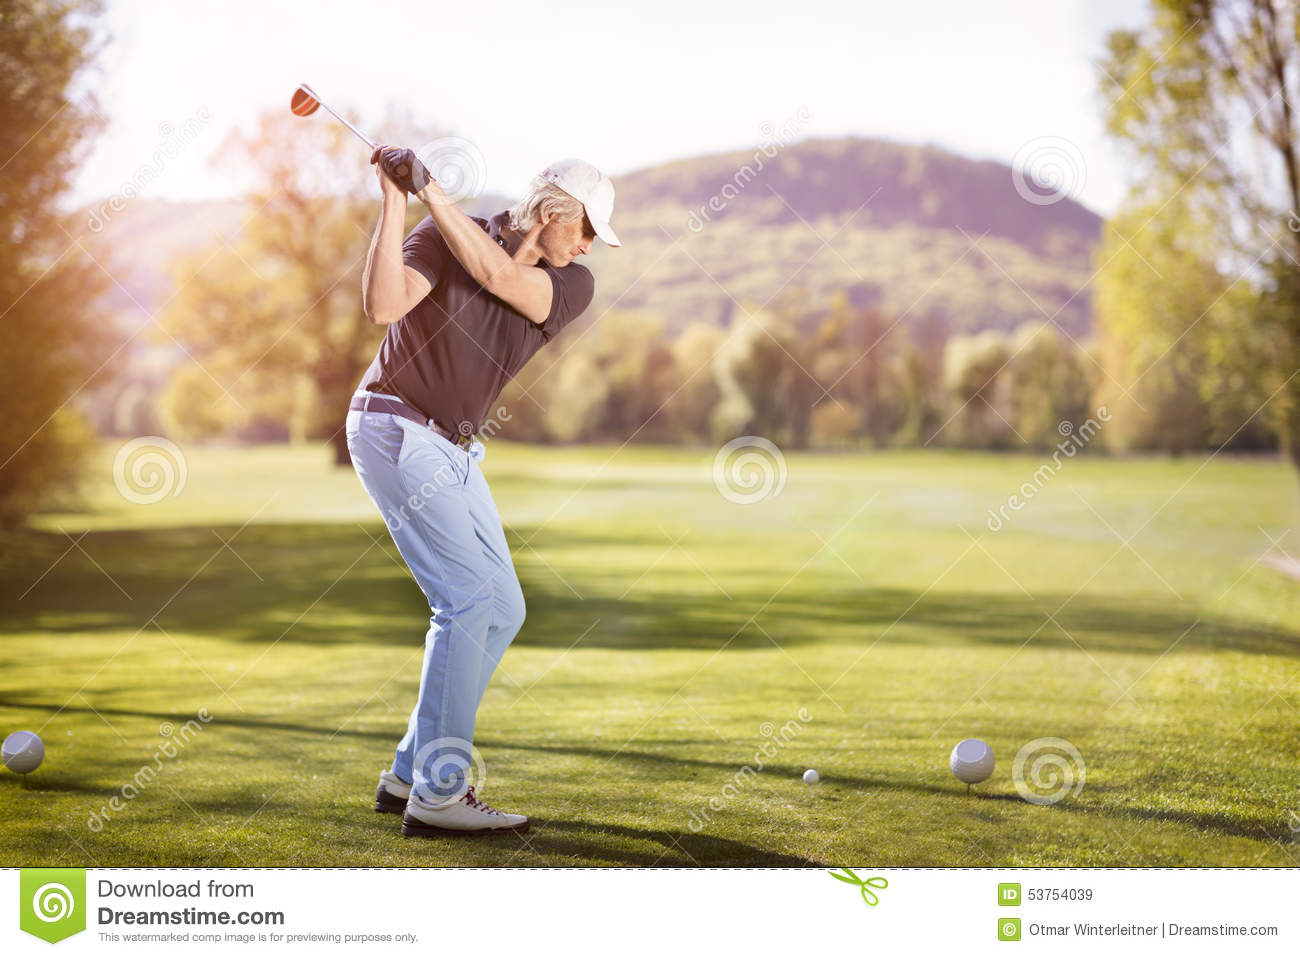 Old Man Swinging Golf Club Stock Photo Image 53754039